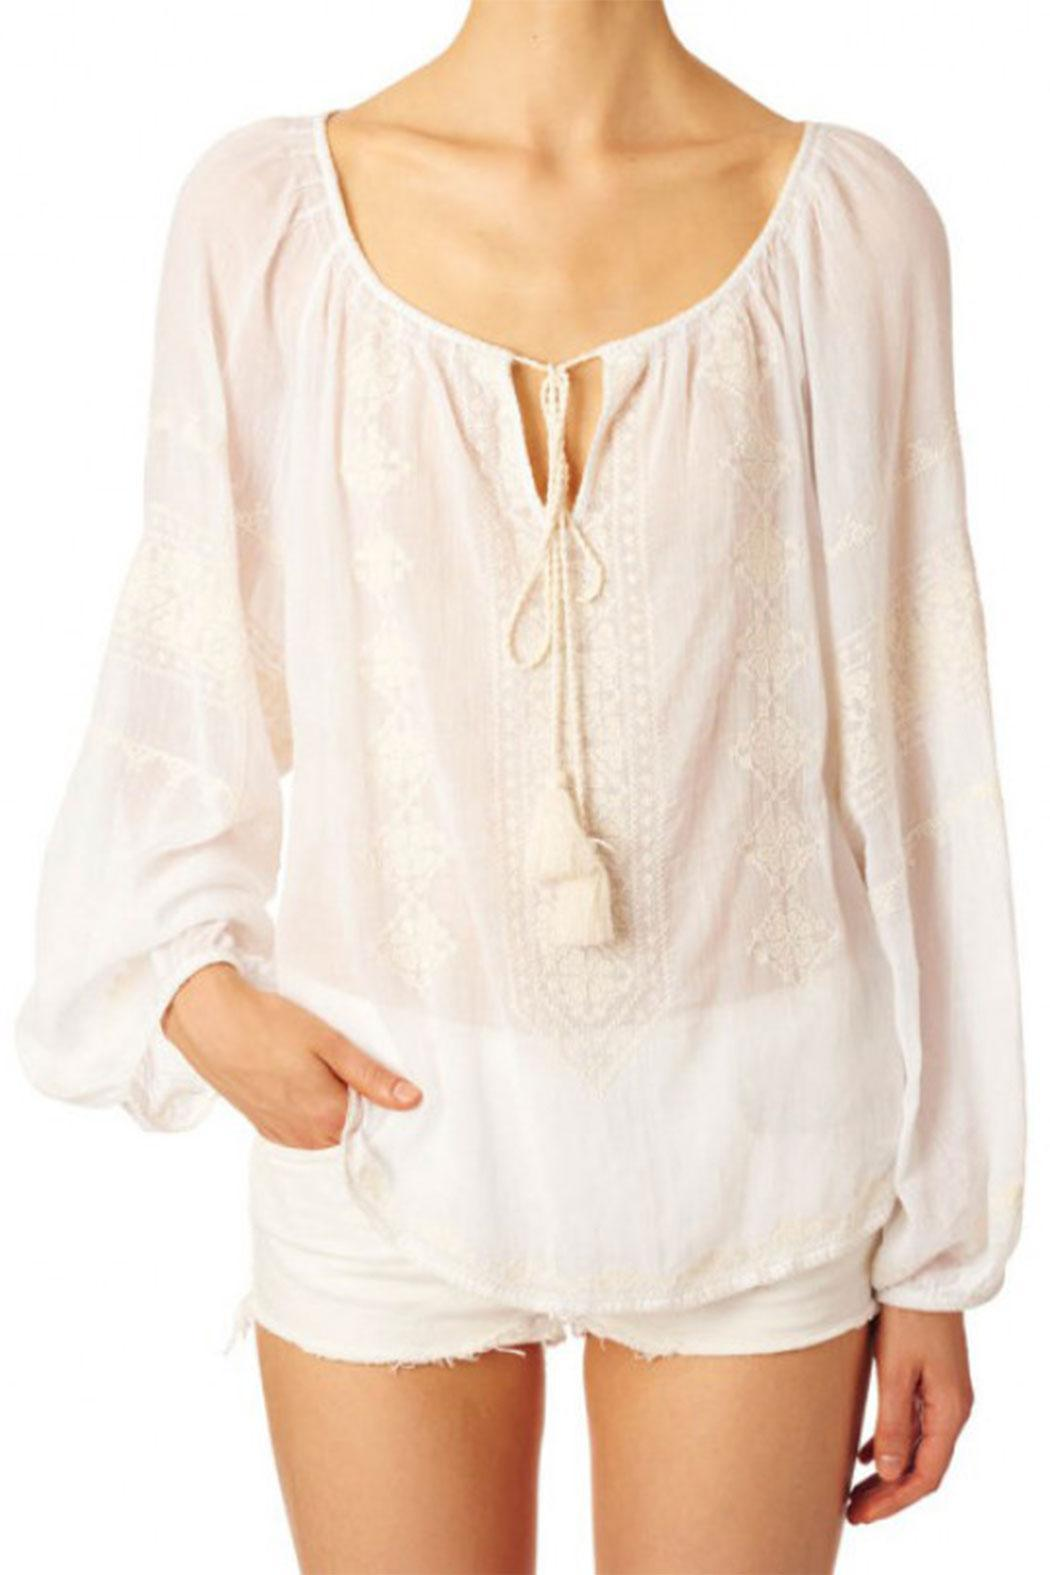 Star Mela Ecru Embroided Top - Front Cropped Image